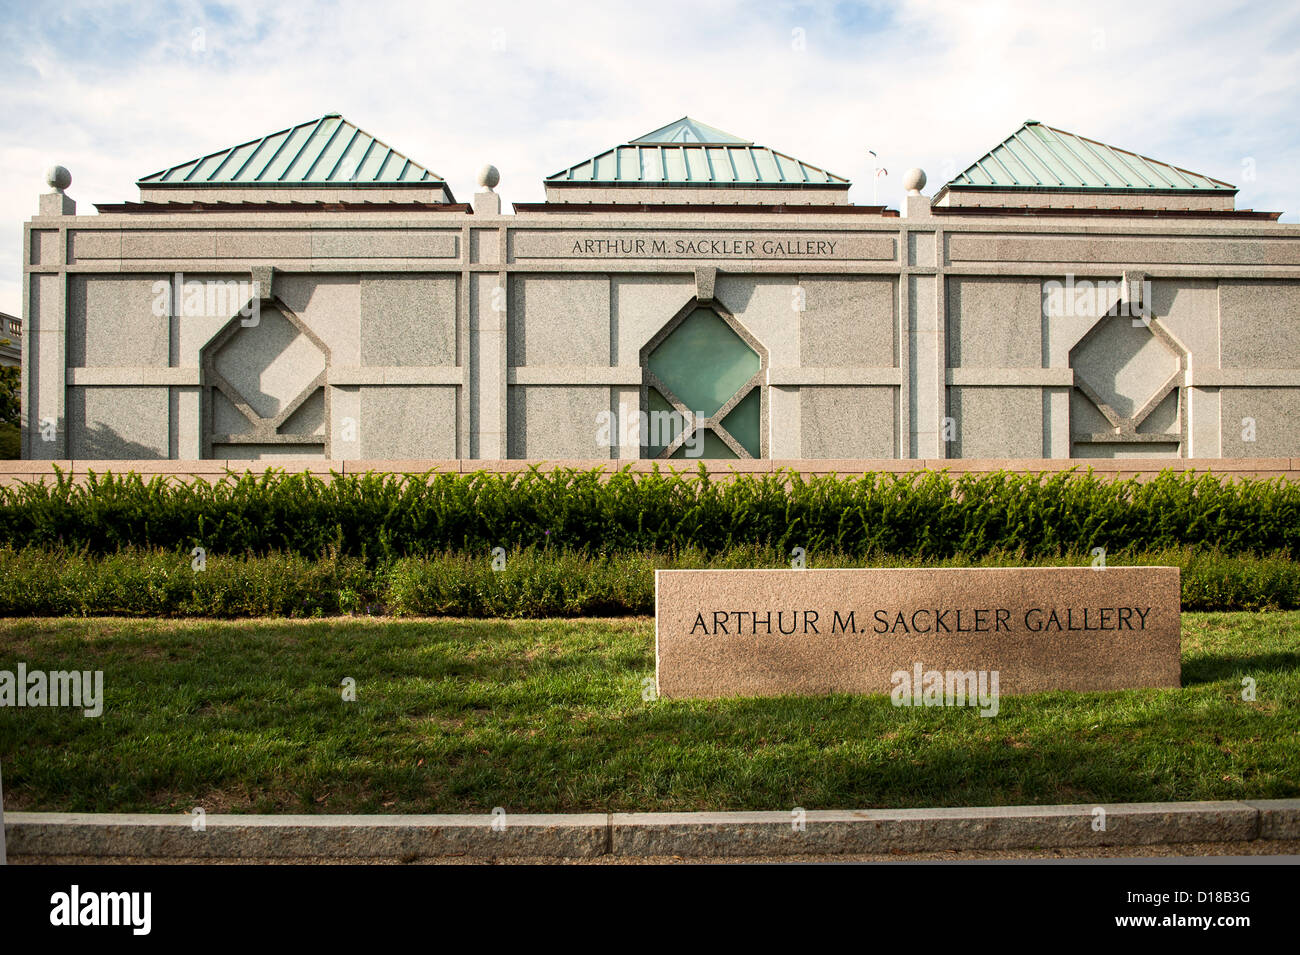 Arthur M. Sackler Gallery and Museum in Washington DC - Stock Image